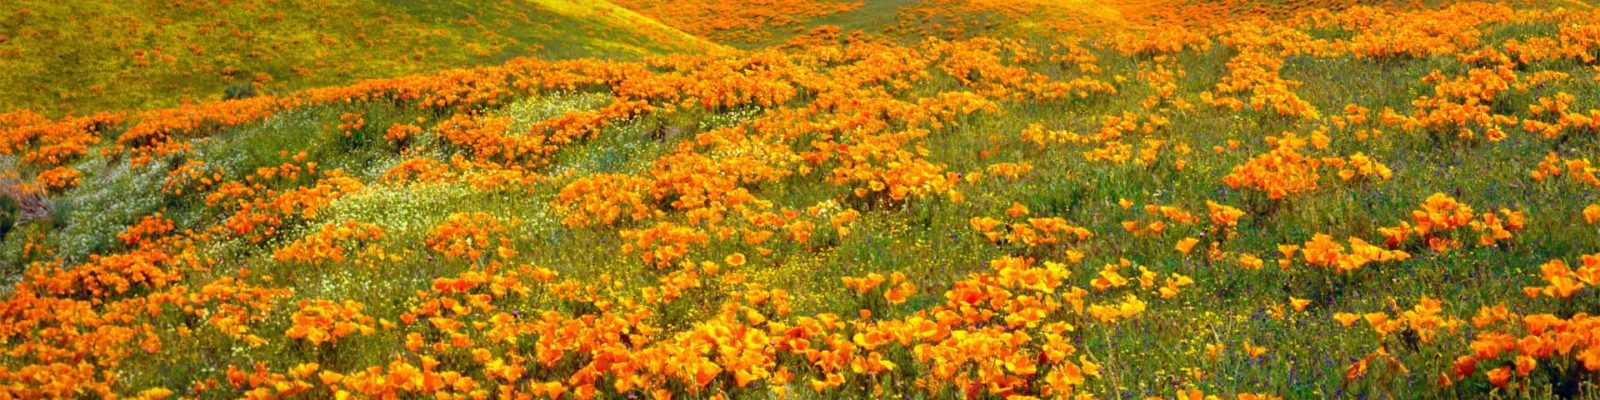 antelope valley bankruptcy poppies